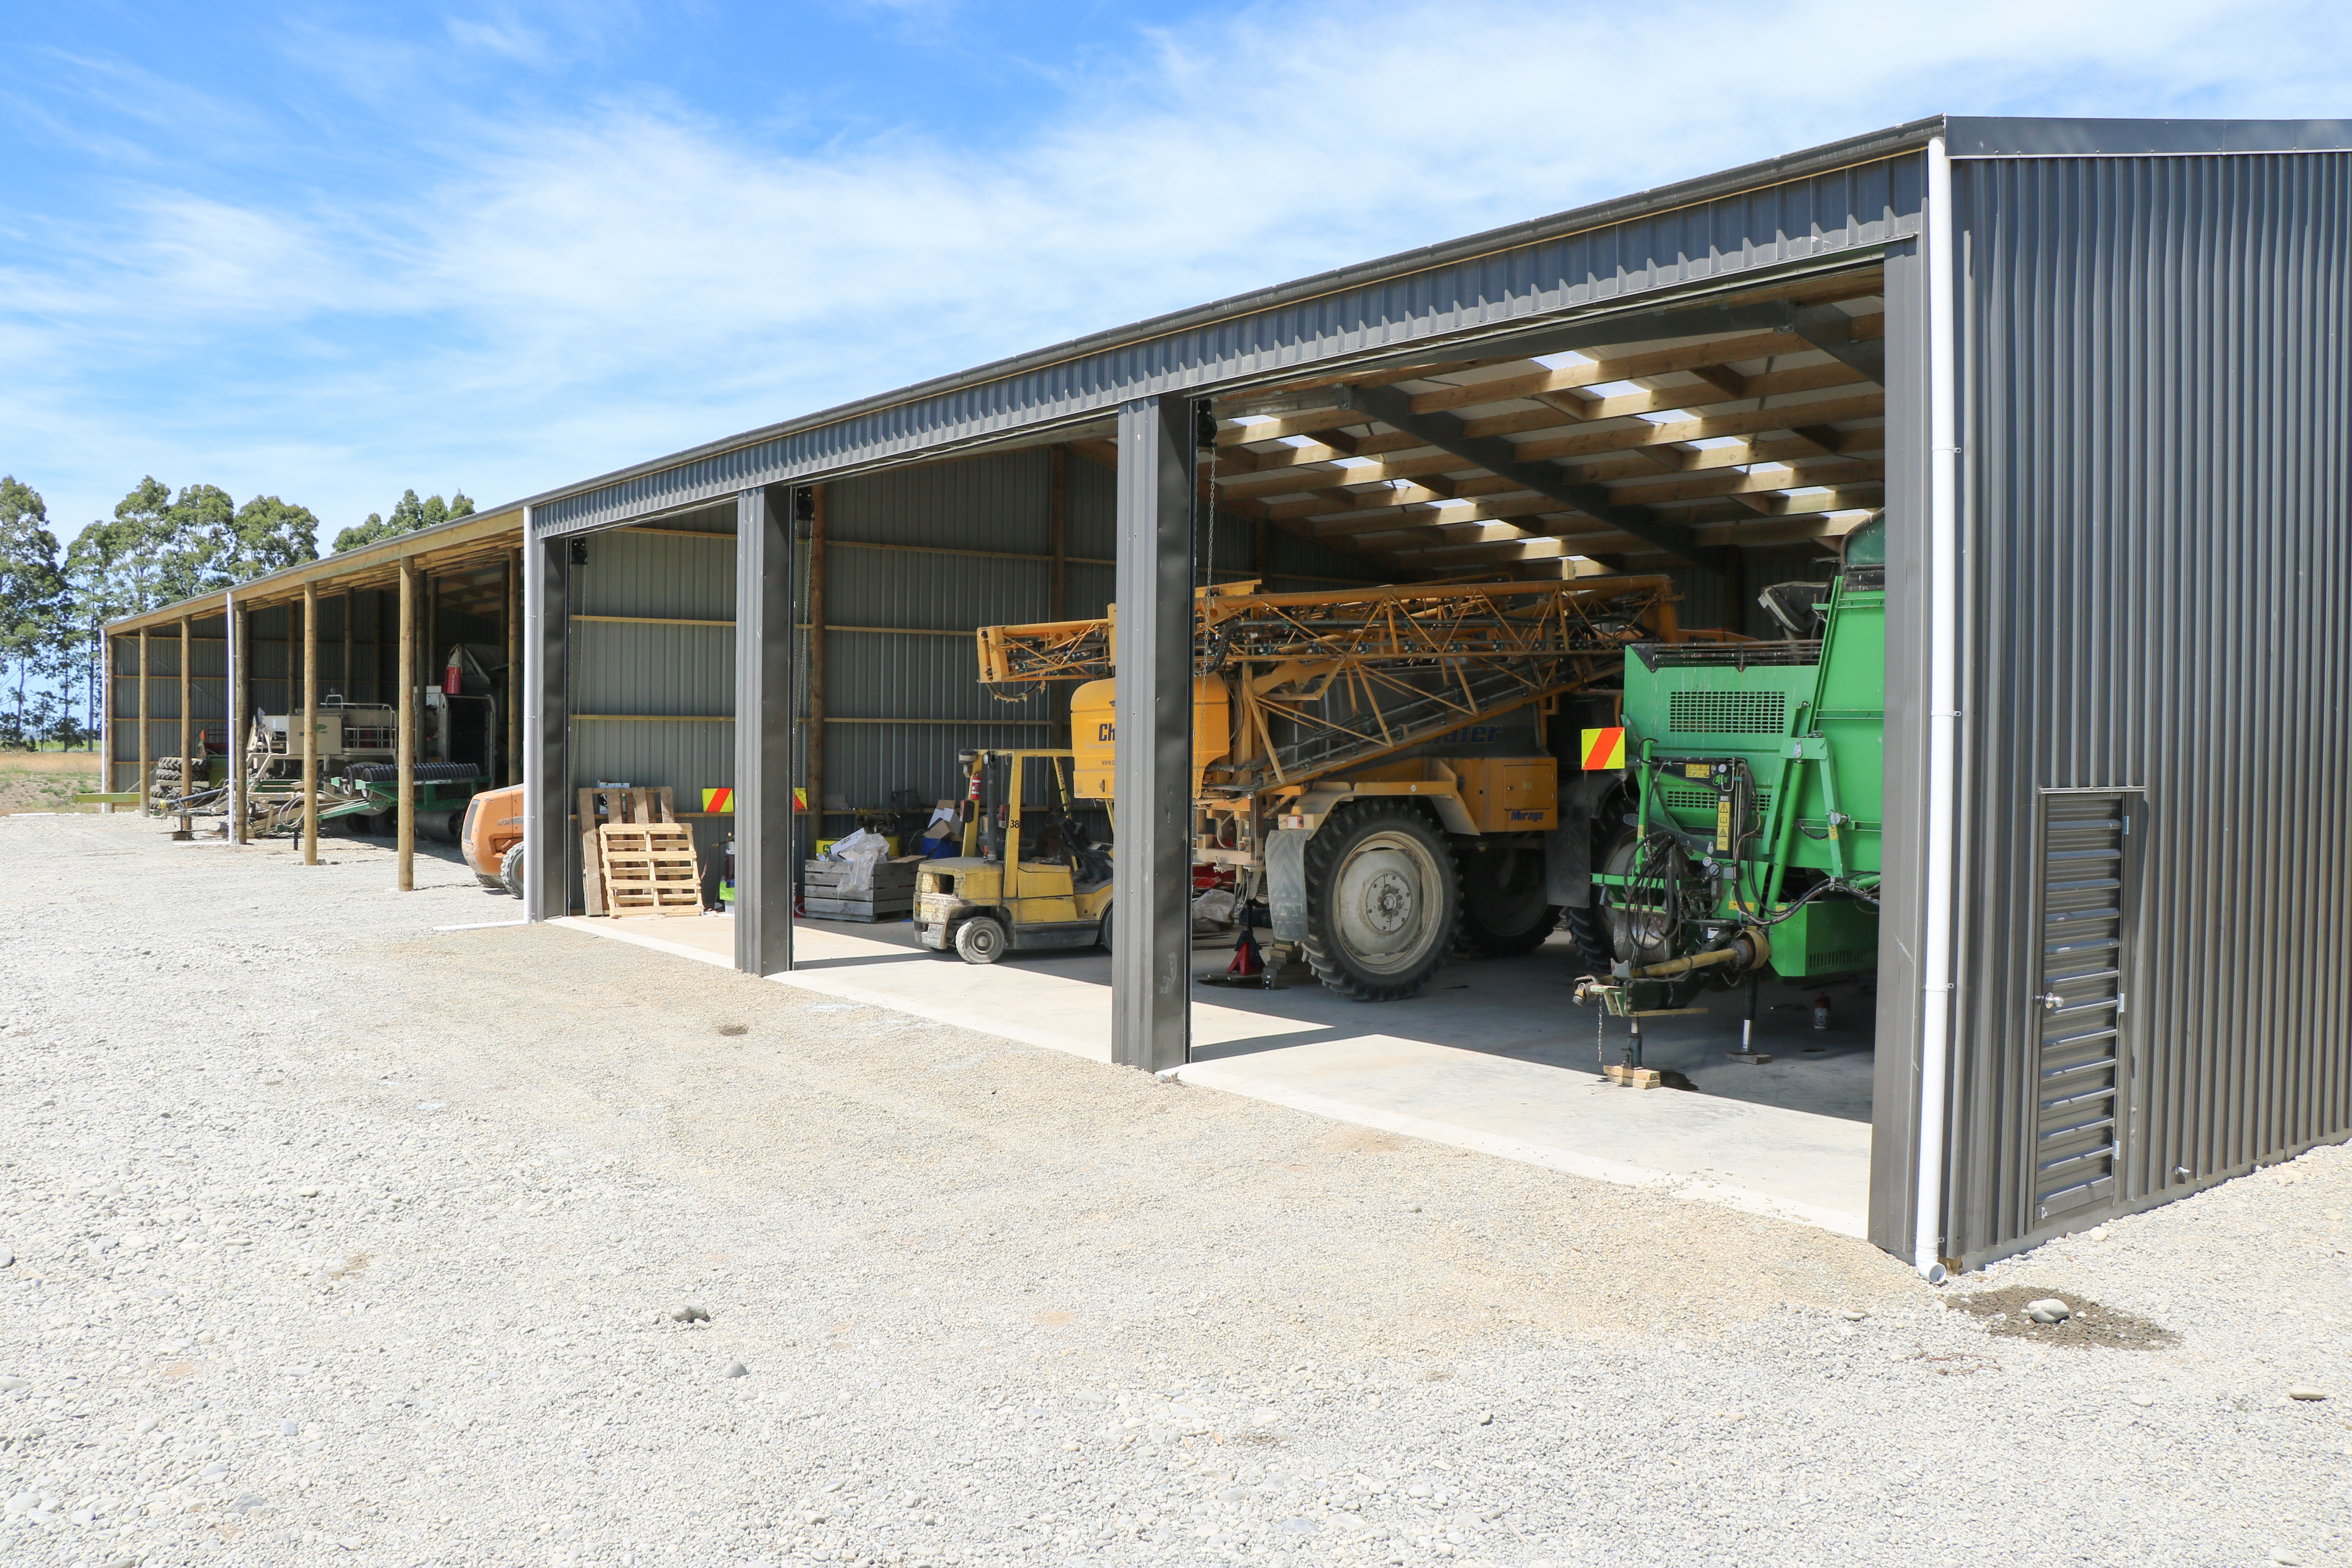 Here we have one of our favourite clearspan sheds